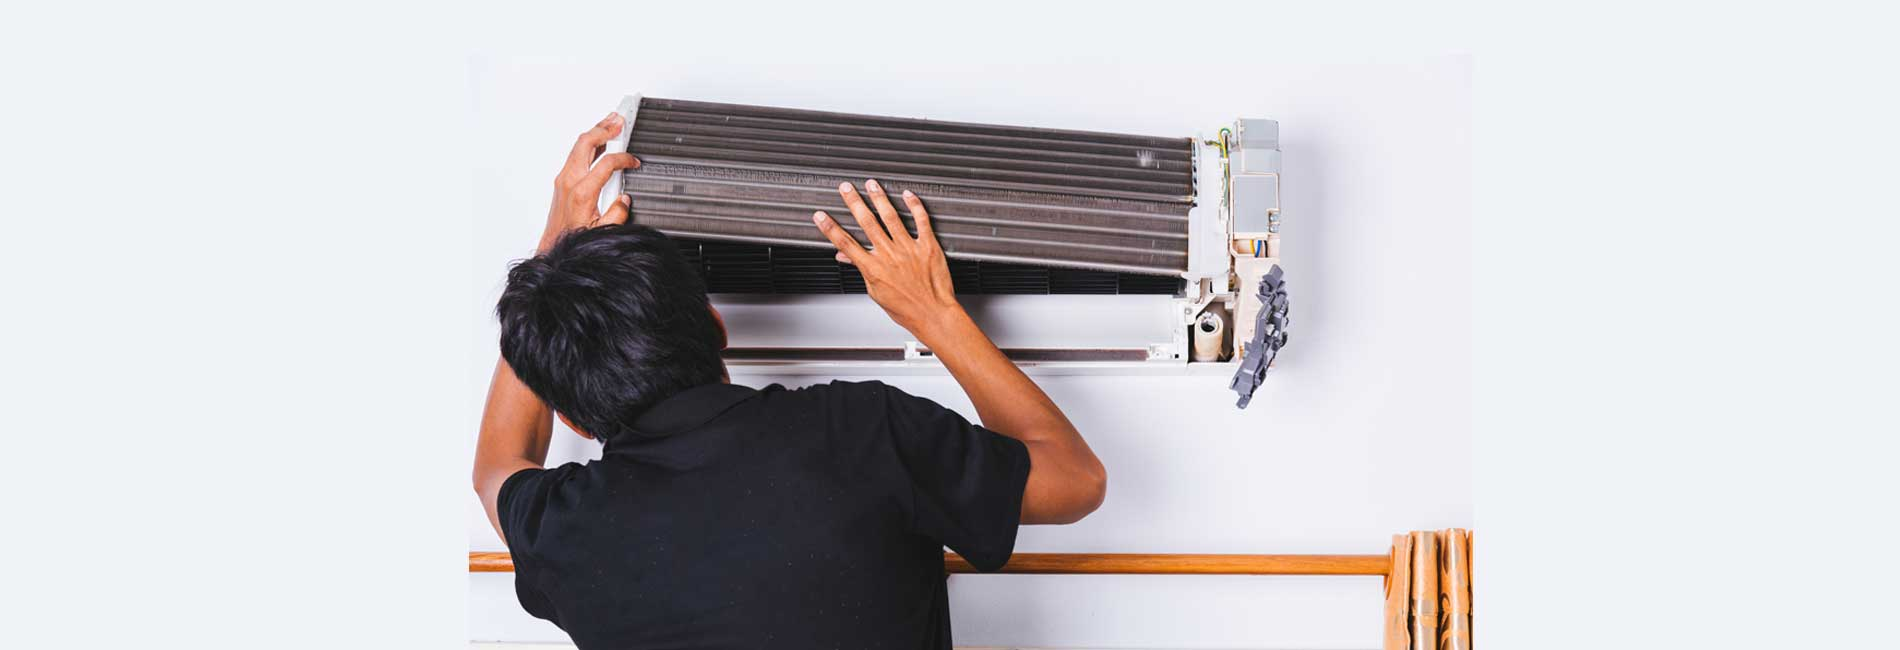 LG Split AC Uninstallation in Pulianthope